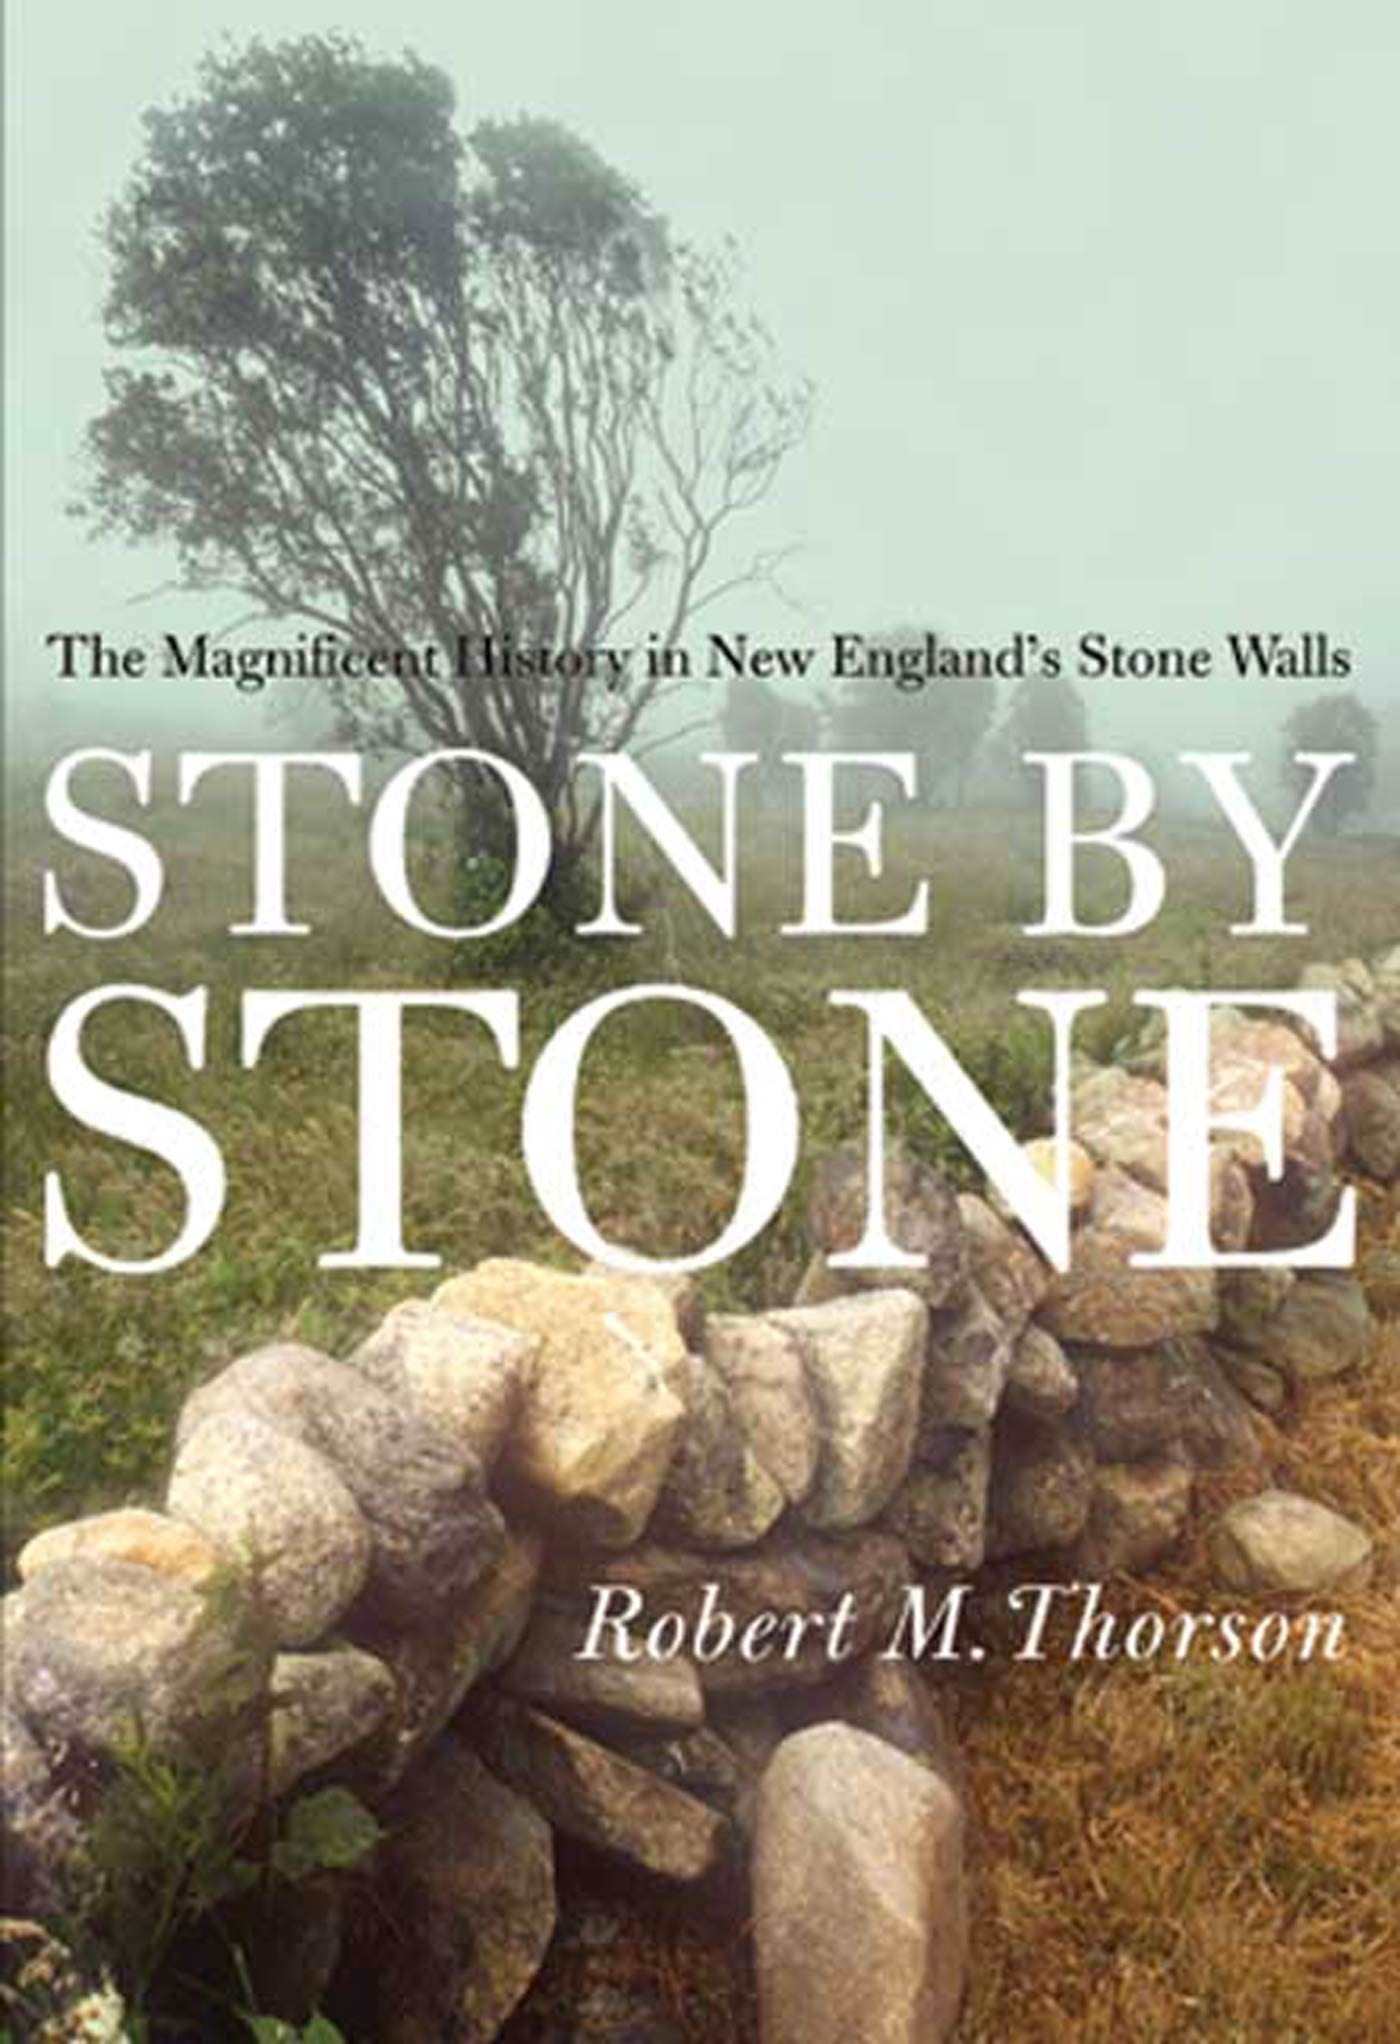 Stone by Stone: The Magnificent History in New Englands Stone Walls